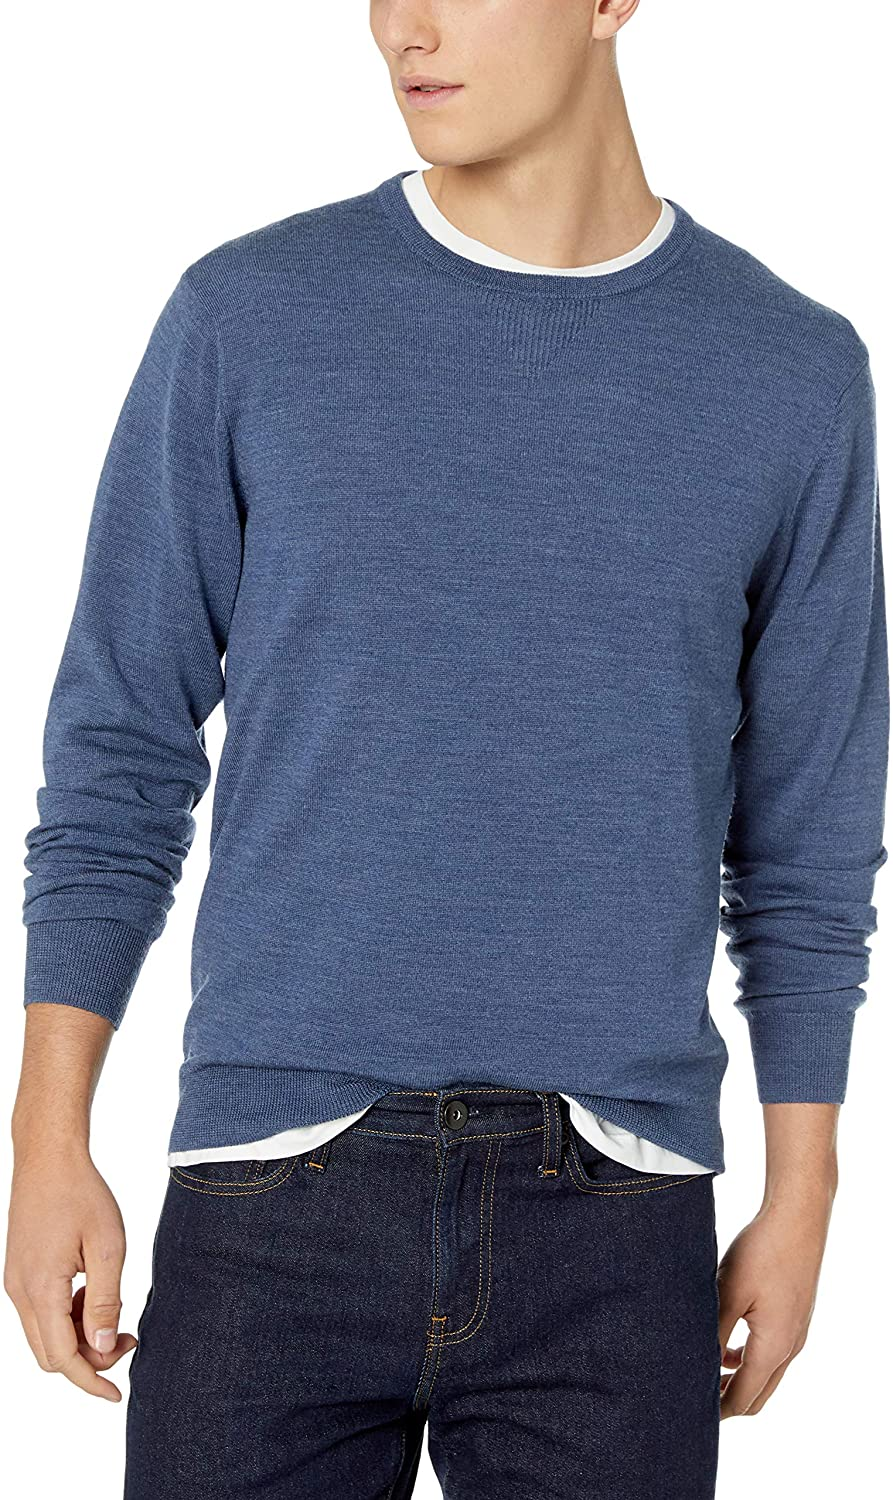 Review of Amazon Brand - Goodthreads Men's Lightweight Merino Wool Crewneck Sweater